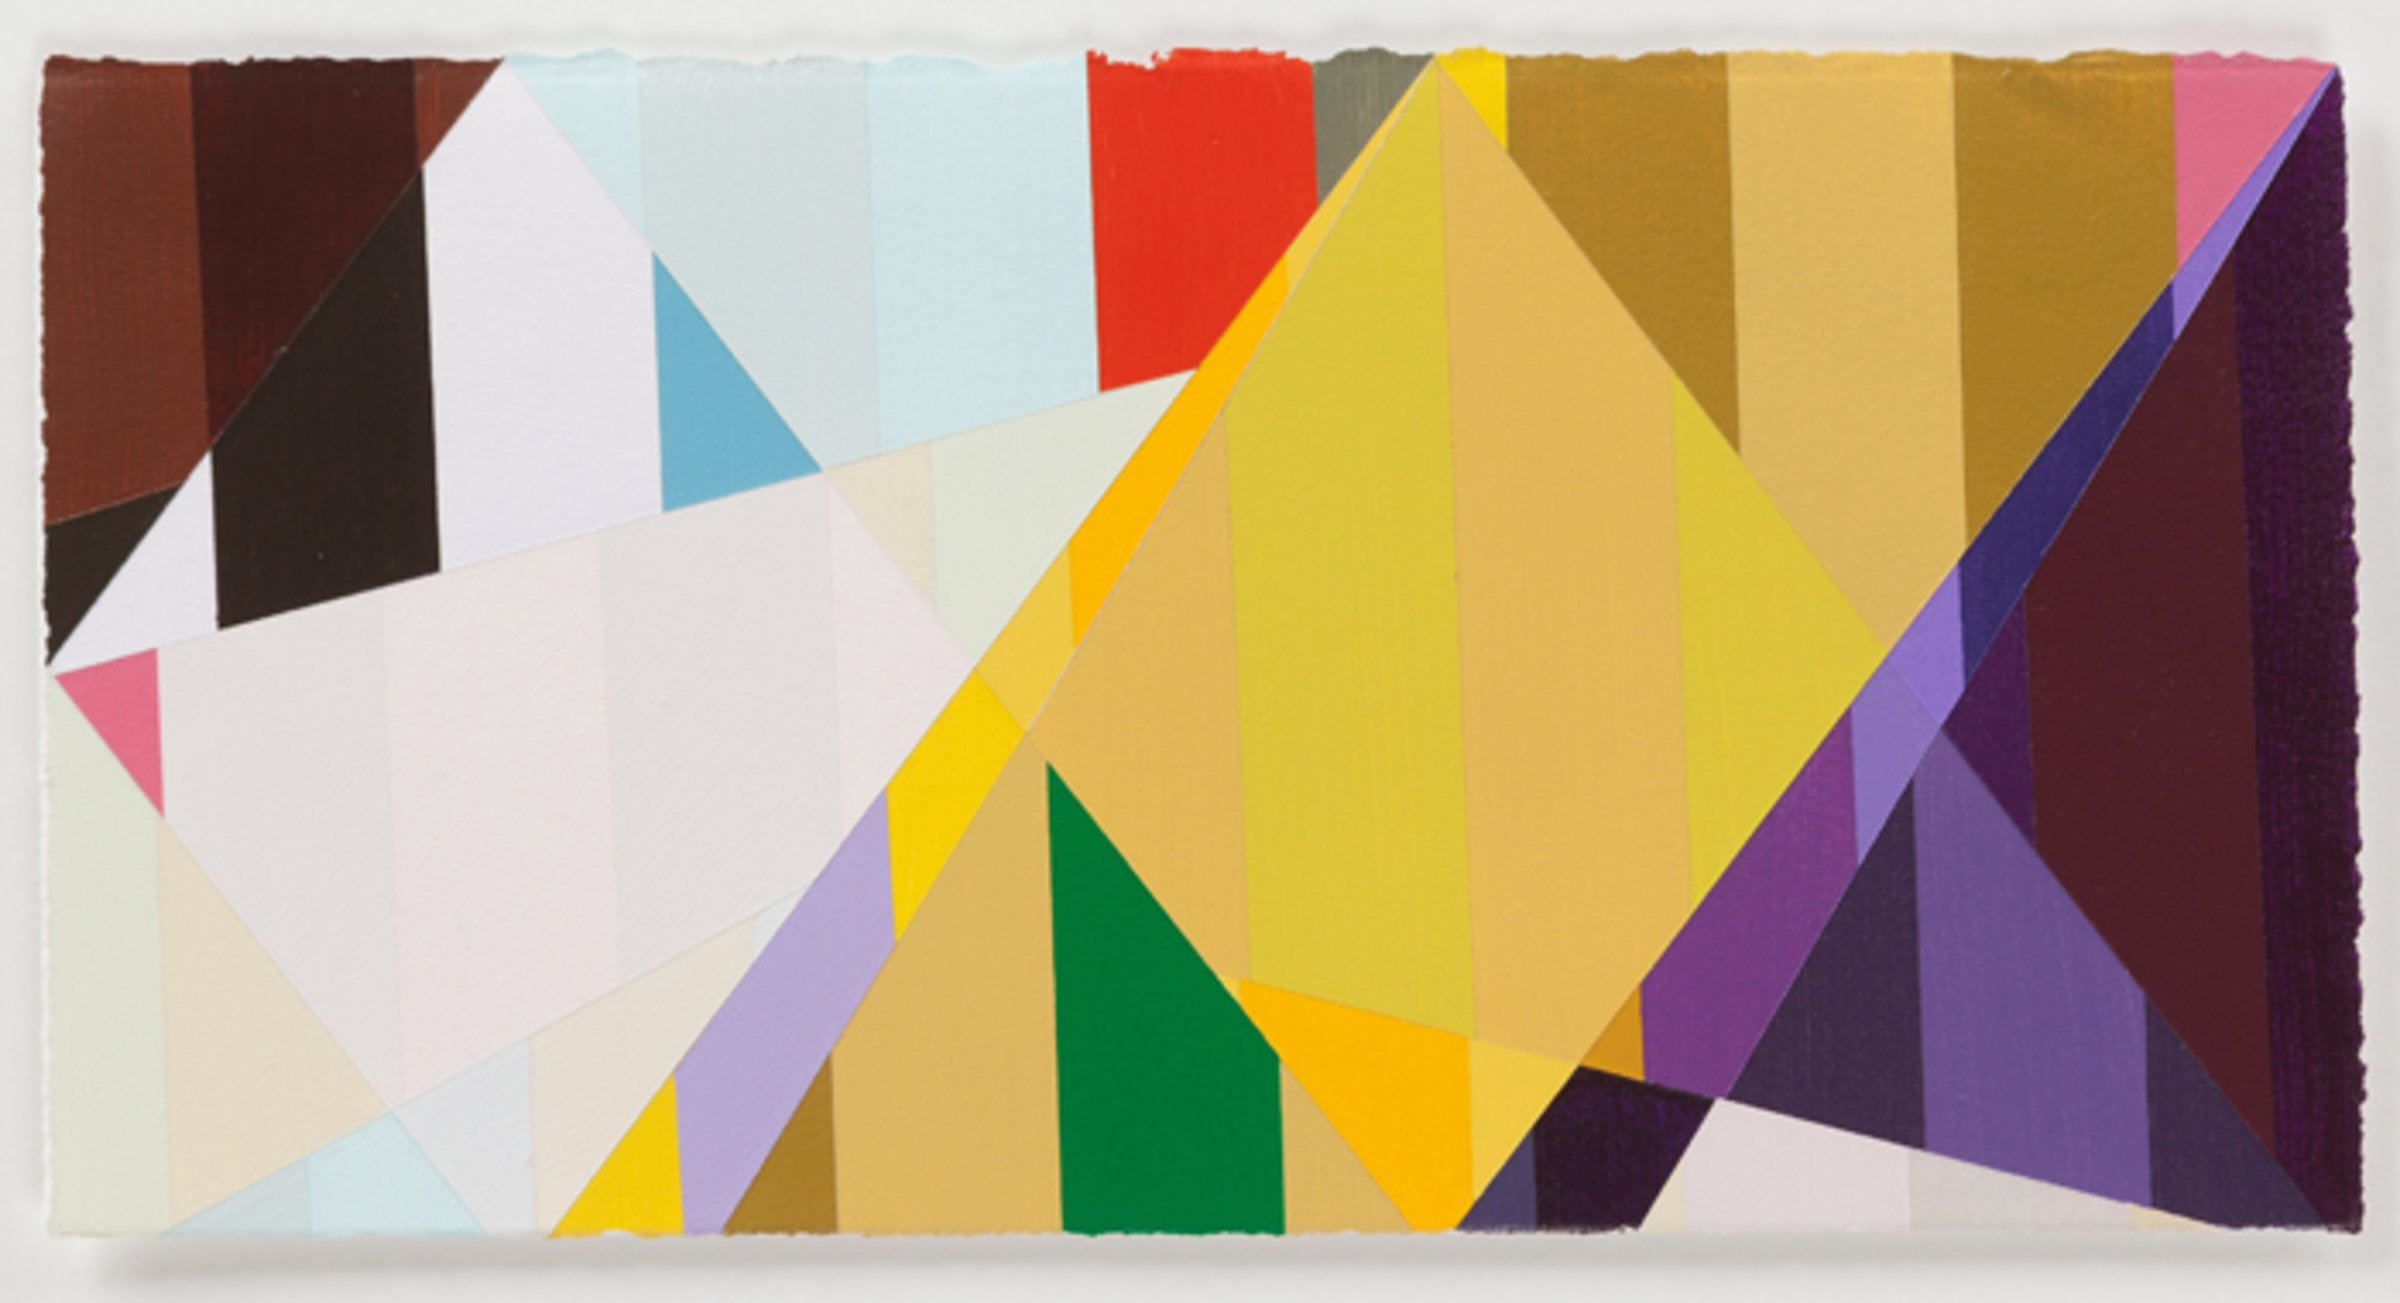 Jerry Walden, Hundred Forty Two (Il Nolano), 2014